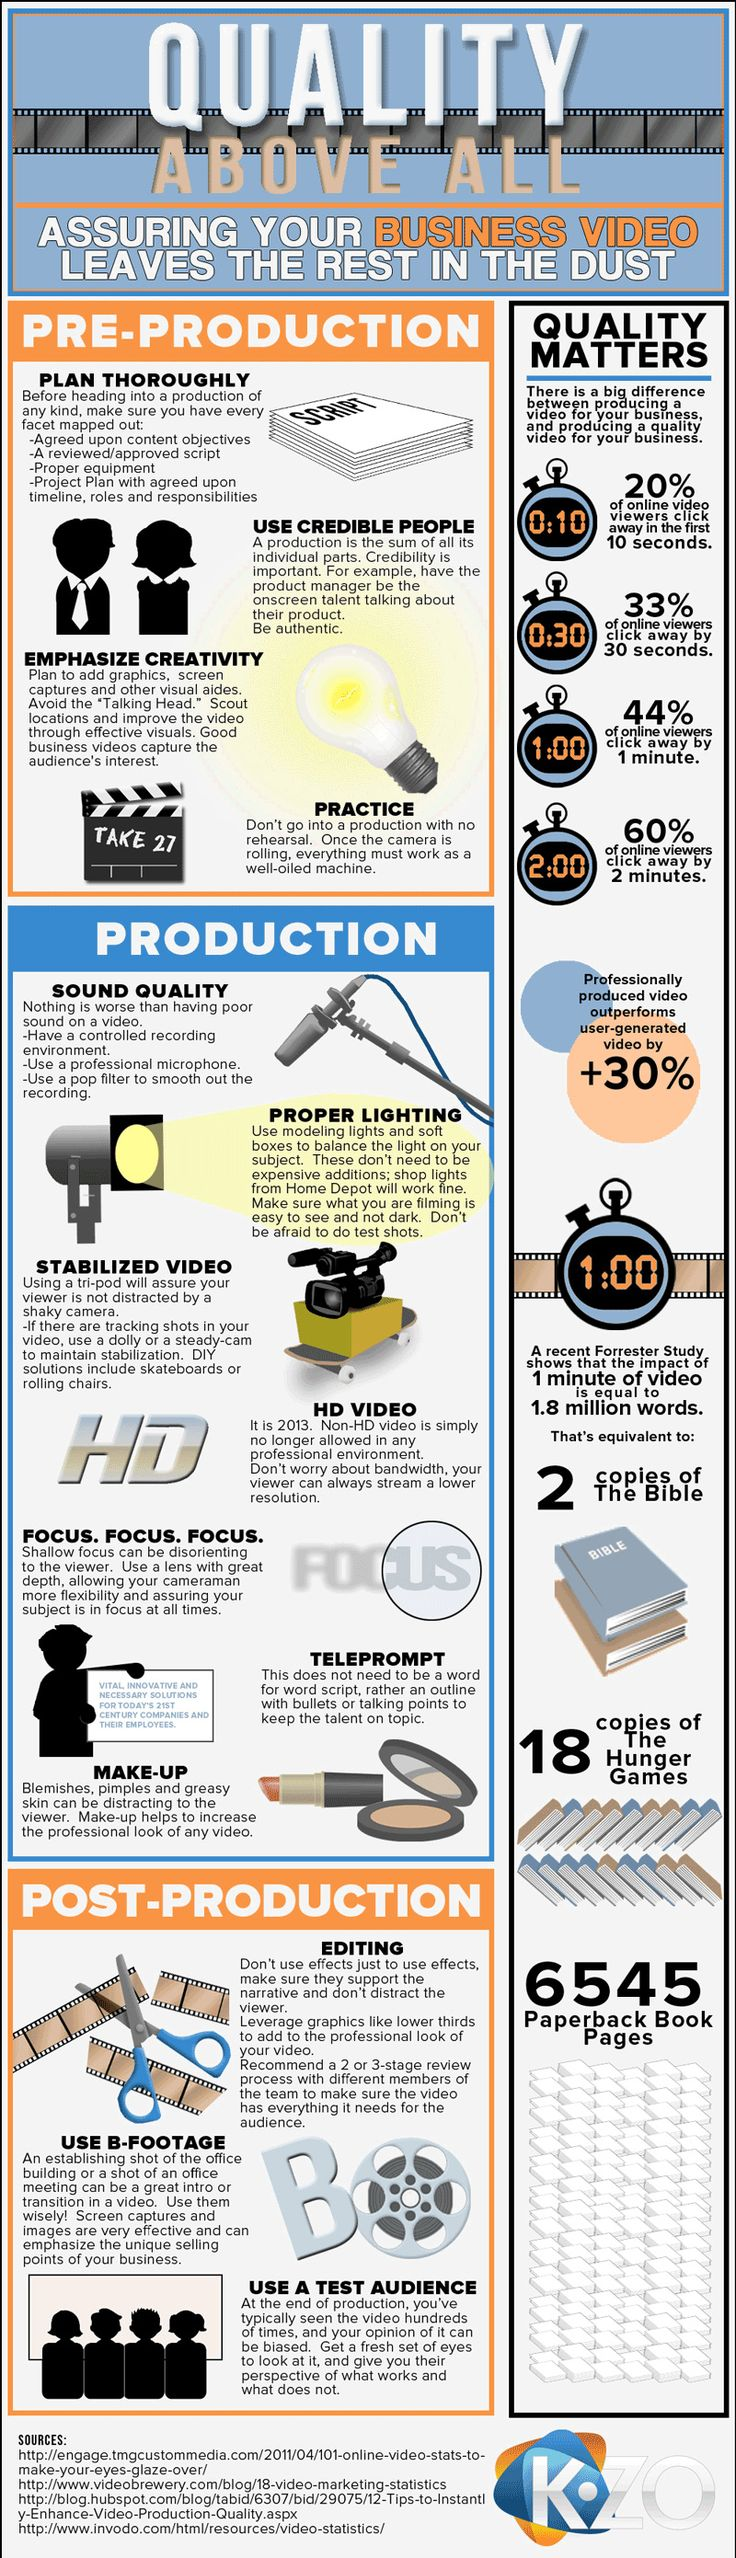 If you are about to create a business marketing video, this infographic can help. It offers tips and things to consider so your video will be well received.